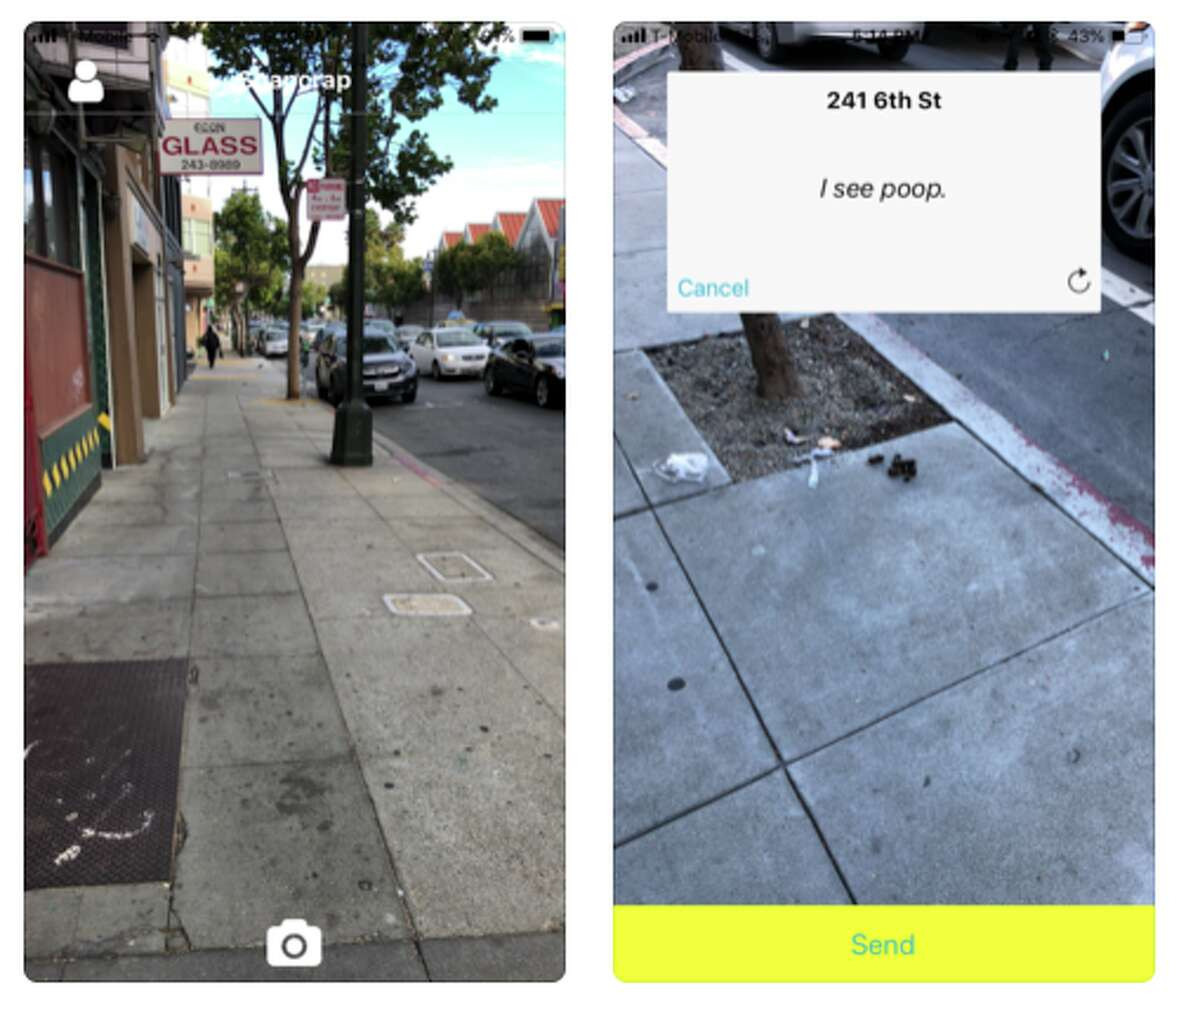 See something gross? The new 'SnapCrap' app allows you to take a photo and press submit. Tickets get instantly submitted to San Francisco's 311 line.